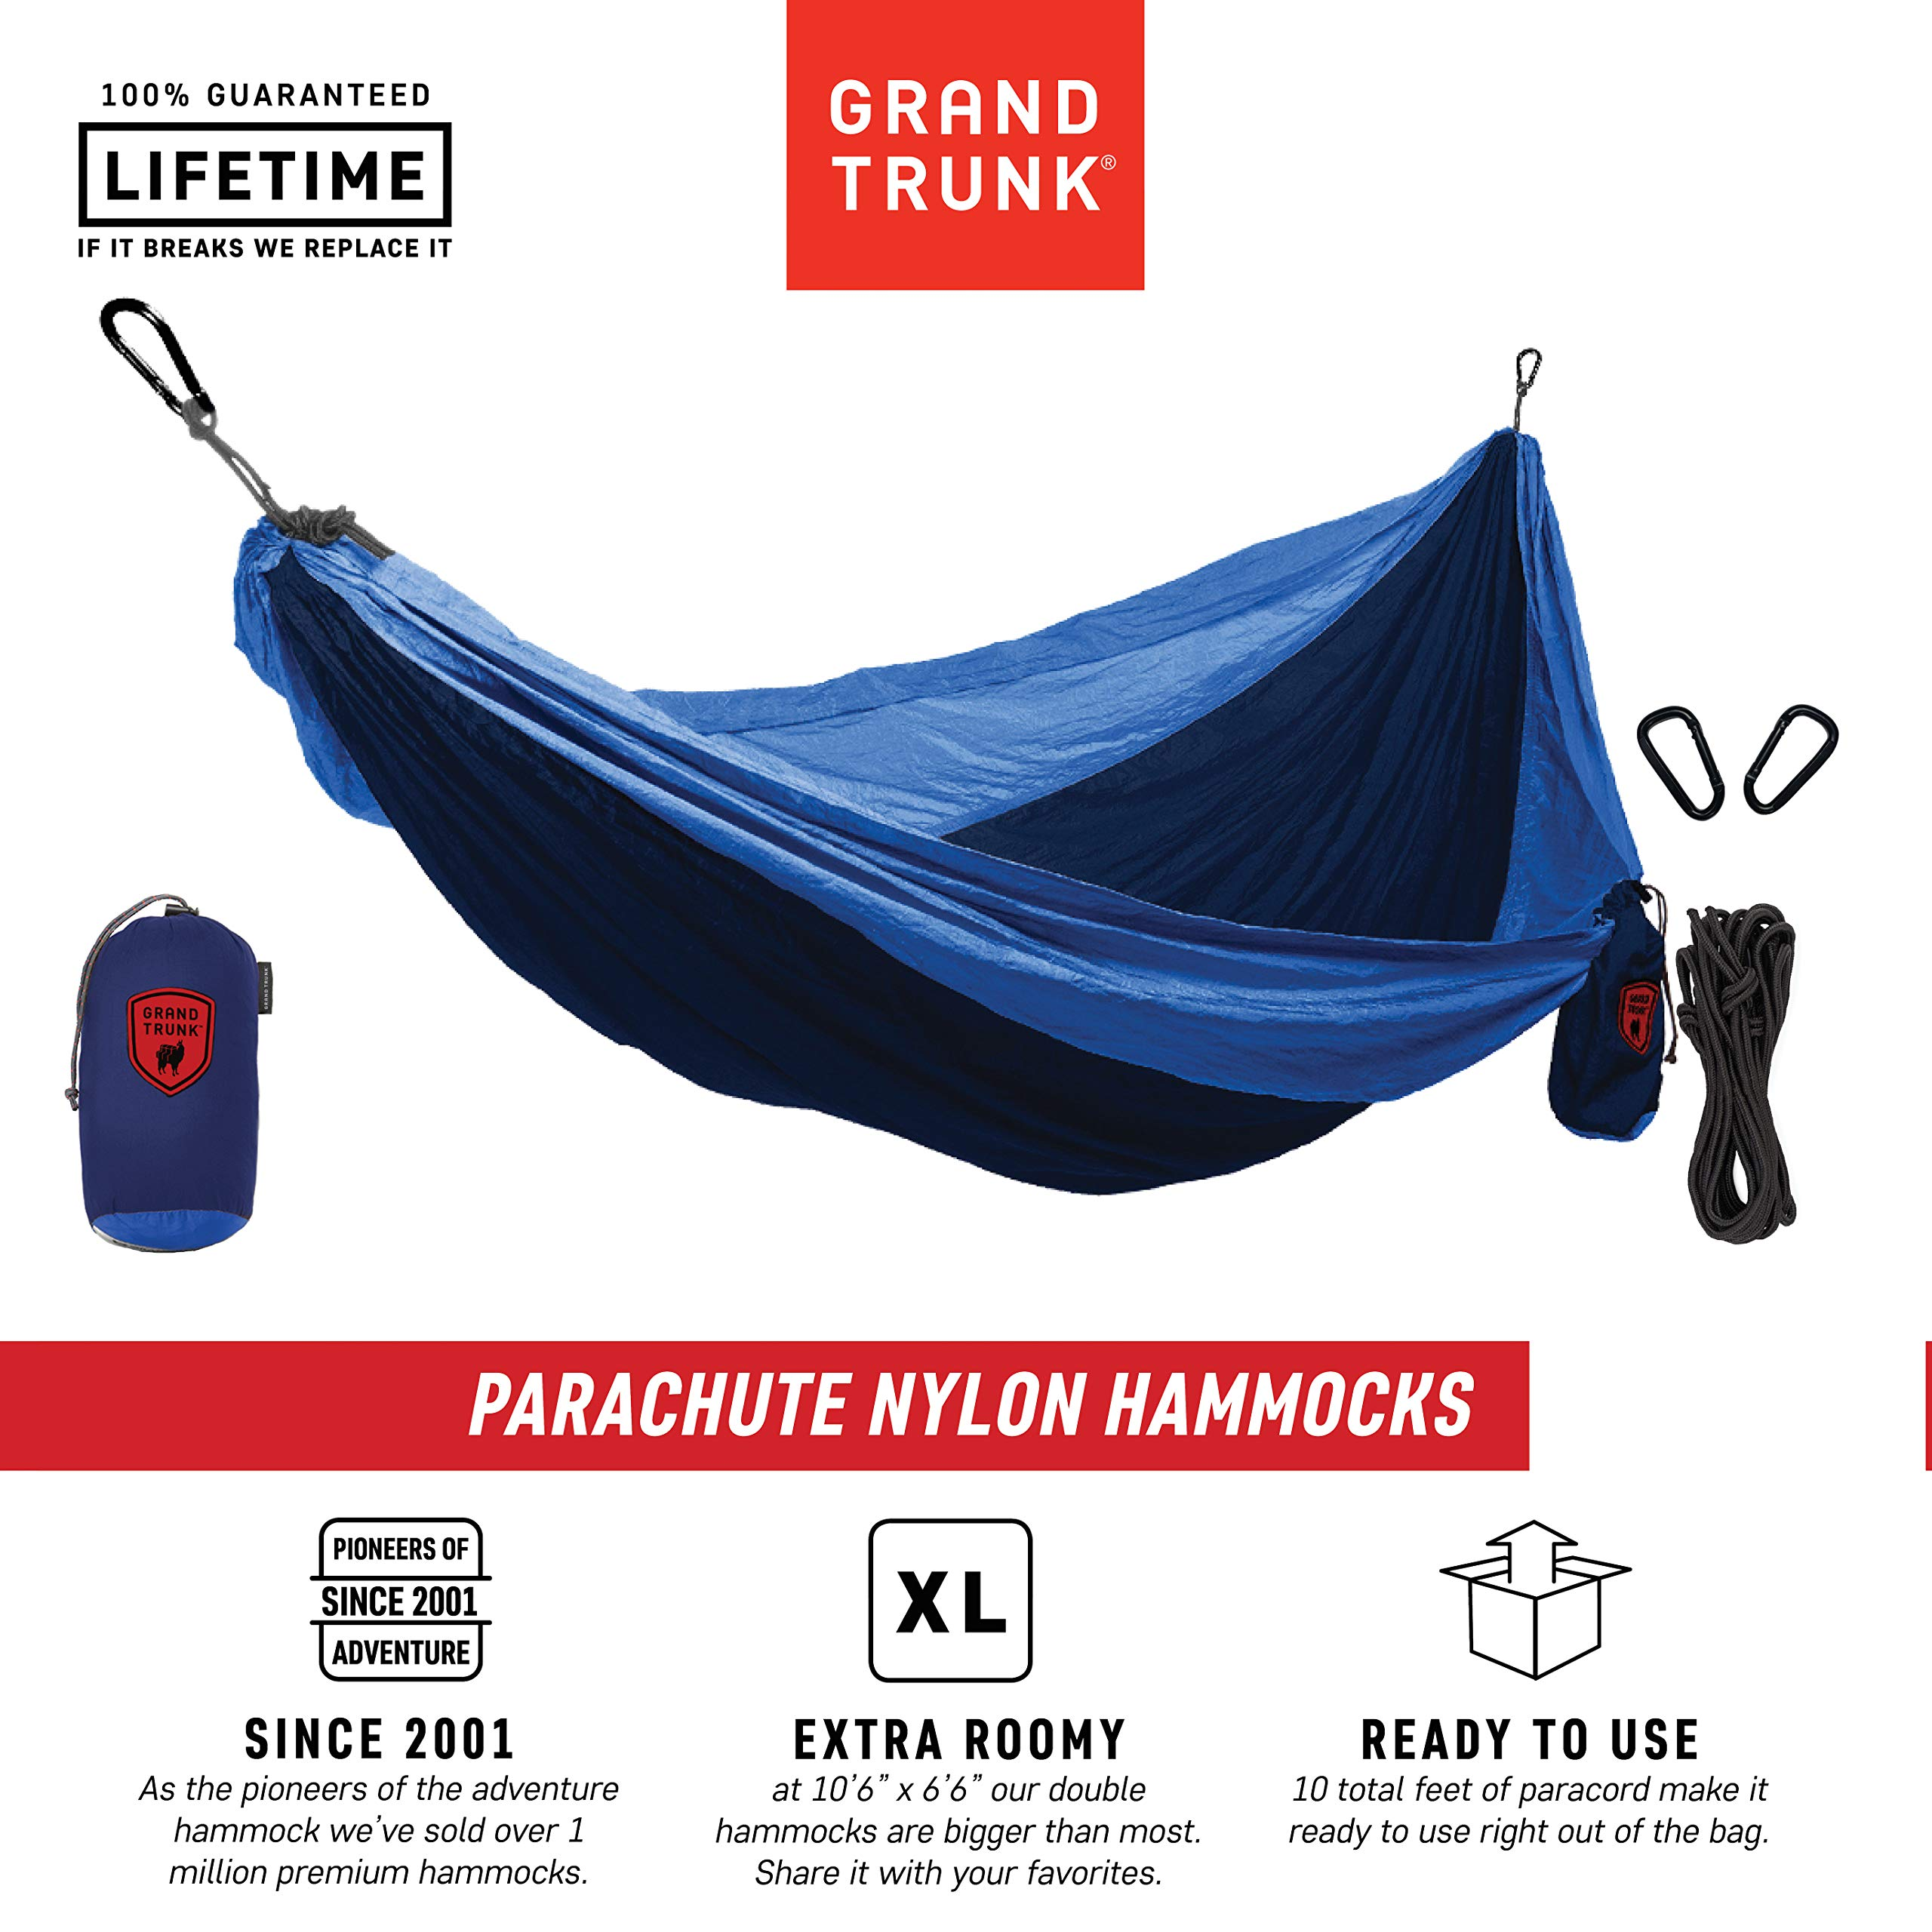 Grand Trunk Hammock - Camping Double, Tree Hanging Kit Included, Nylon, Portable, Indoor Outdoor, Travel, Backpacking, Survival, Navy/Light Blue by Grand Trunk